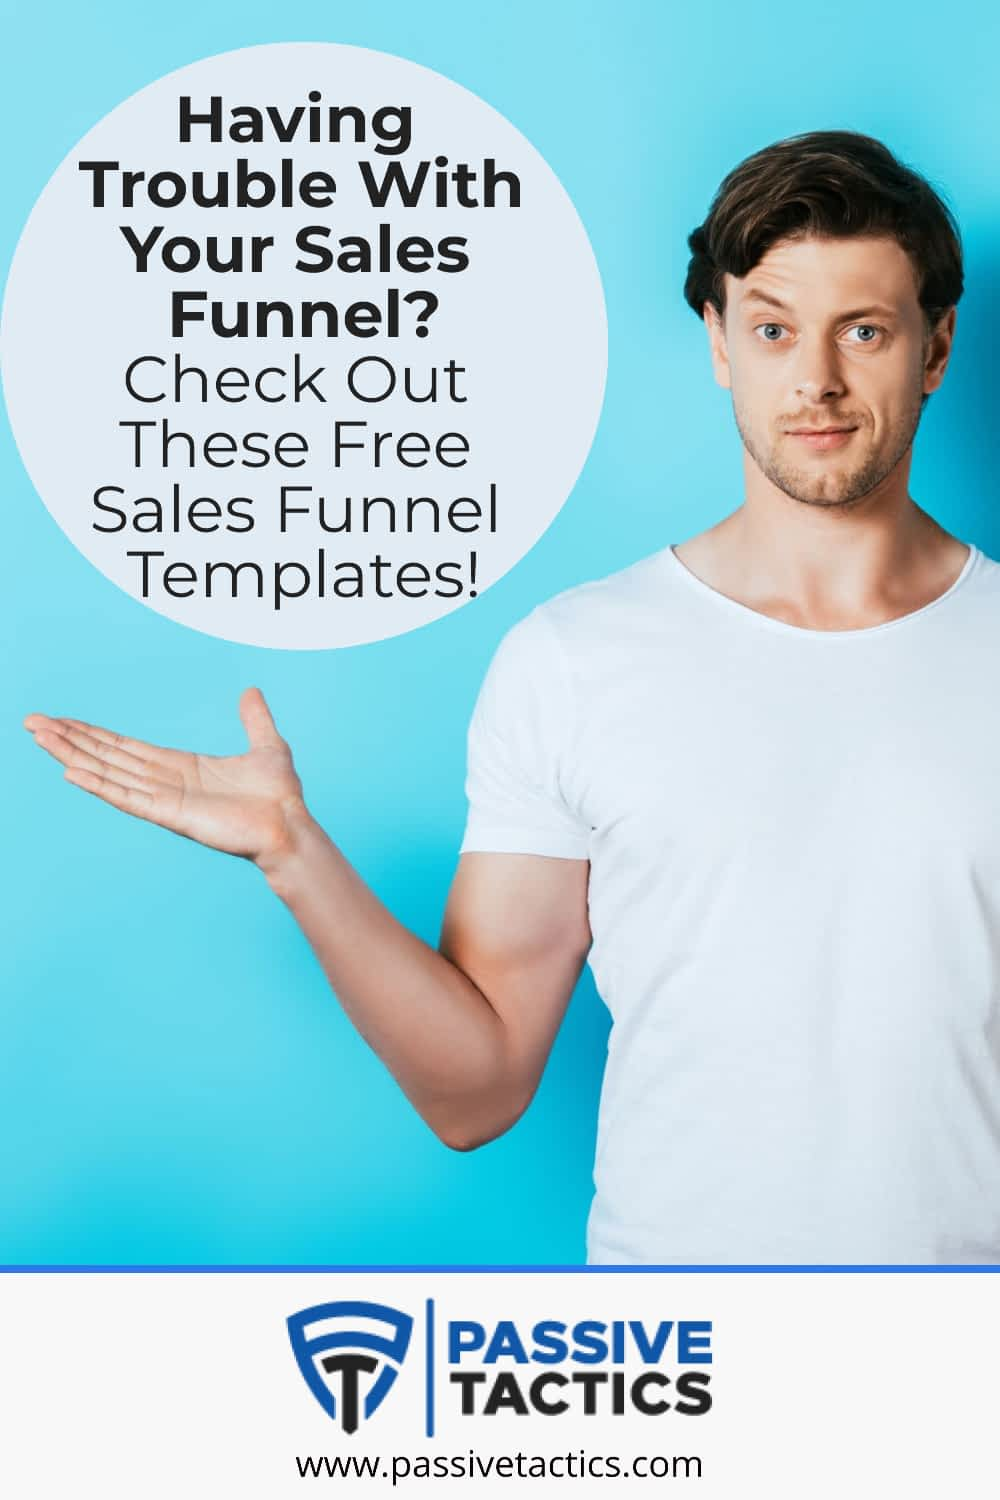 Free Sales Funnels Templates: The Ultimate Guide to Help You Sell More!